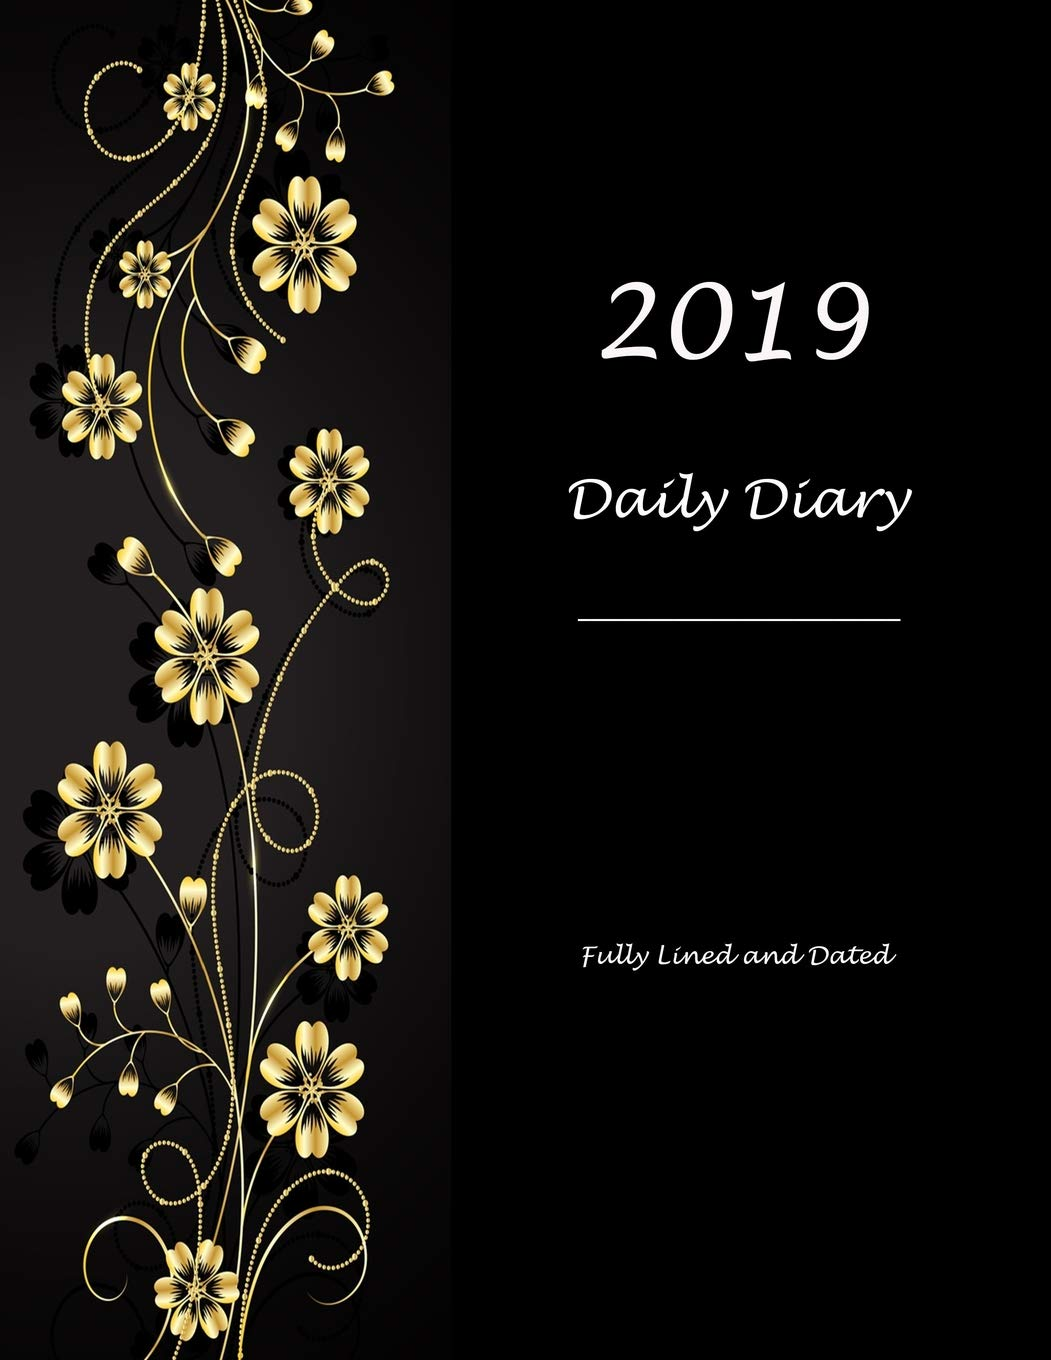 Amazon.com: 2019 Daily Diary: Fully Lined and Dated ...